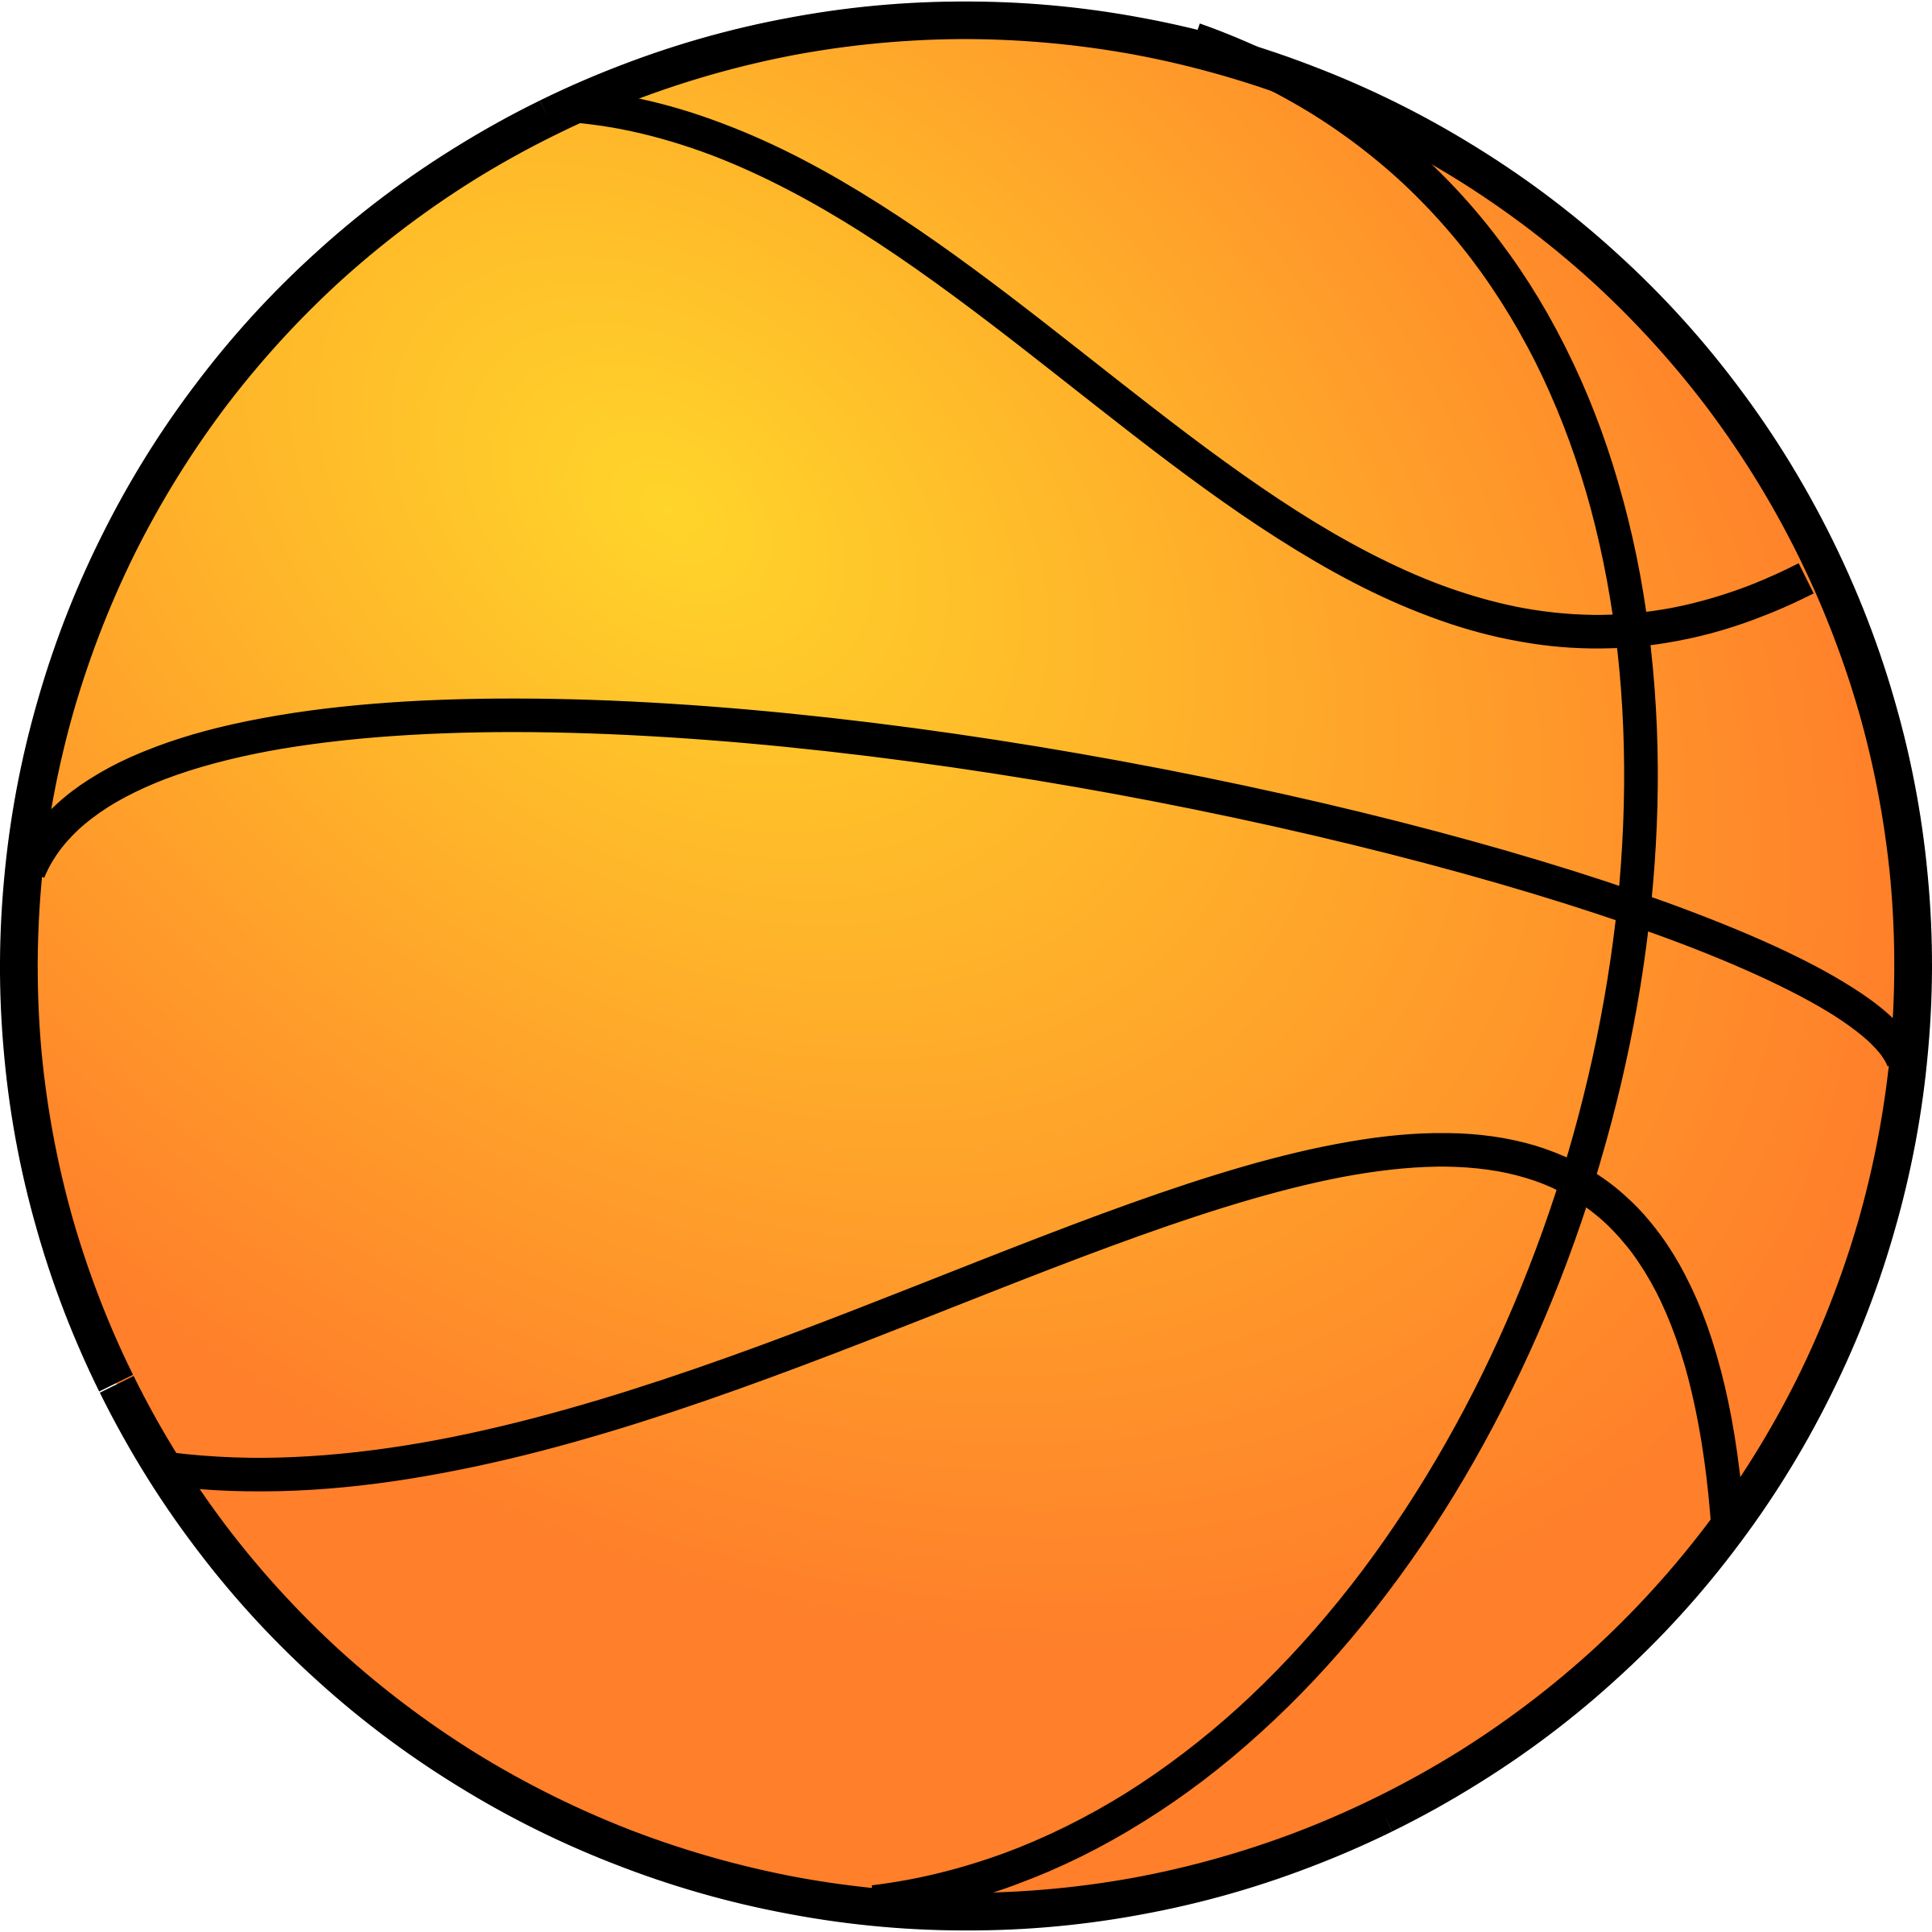 2400x2400 Free Basketball Clip Art Pictures